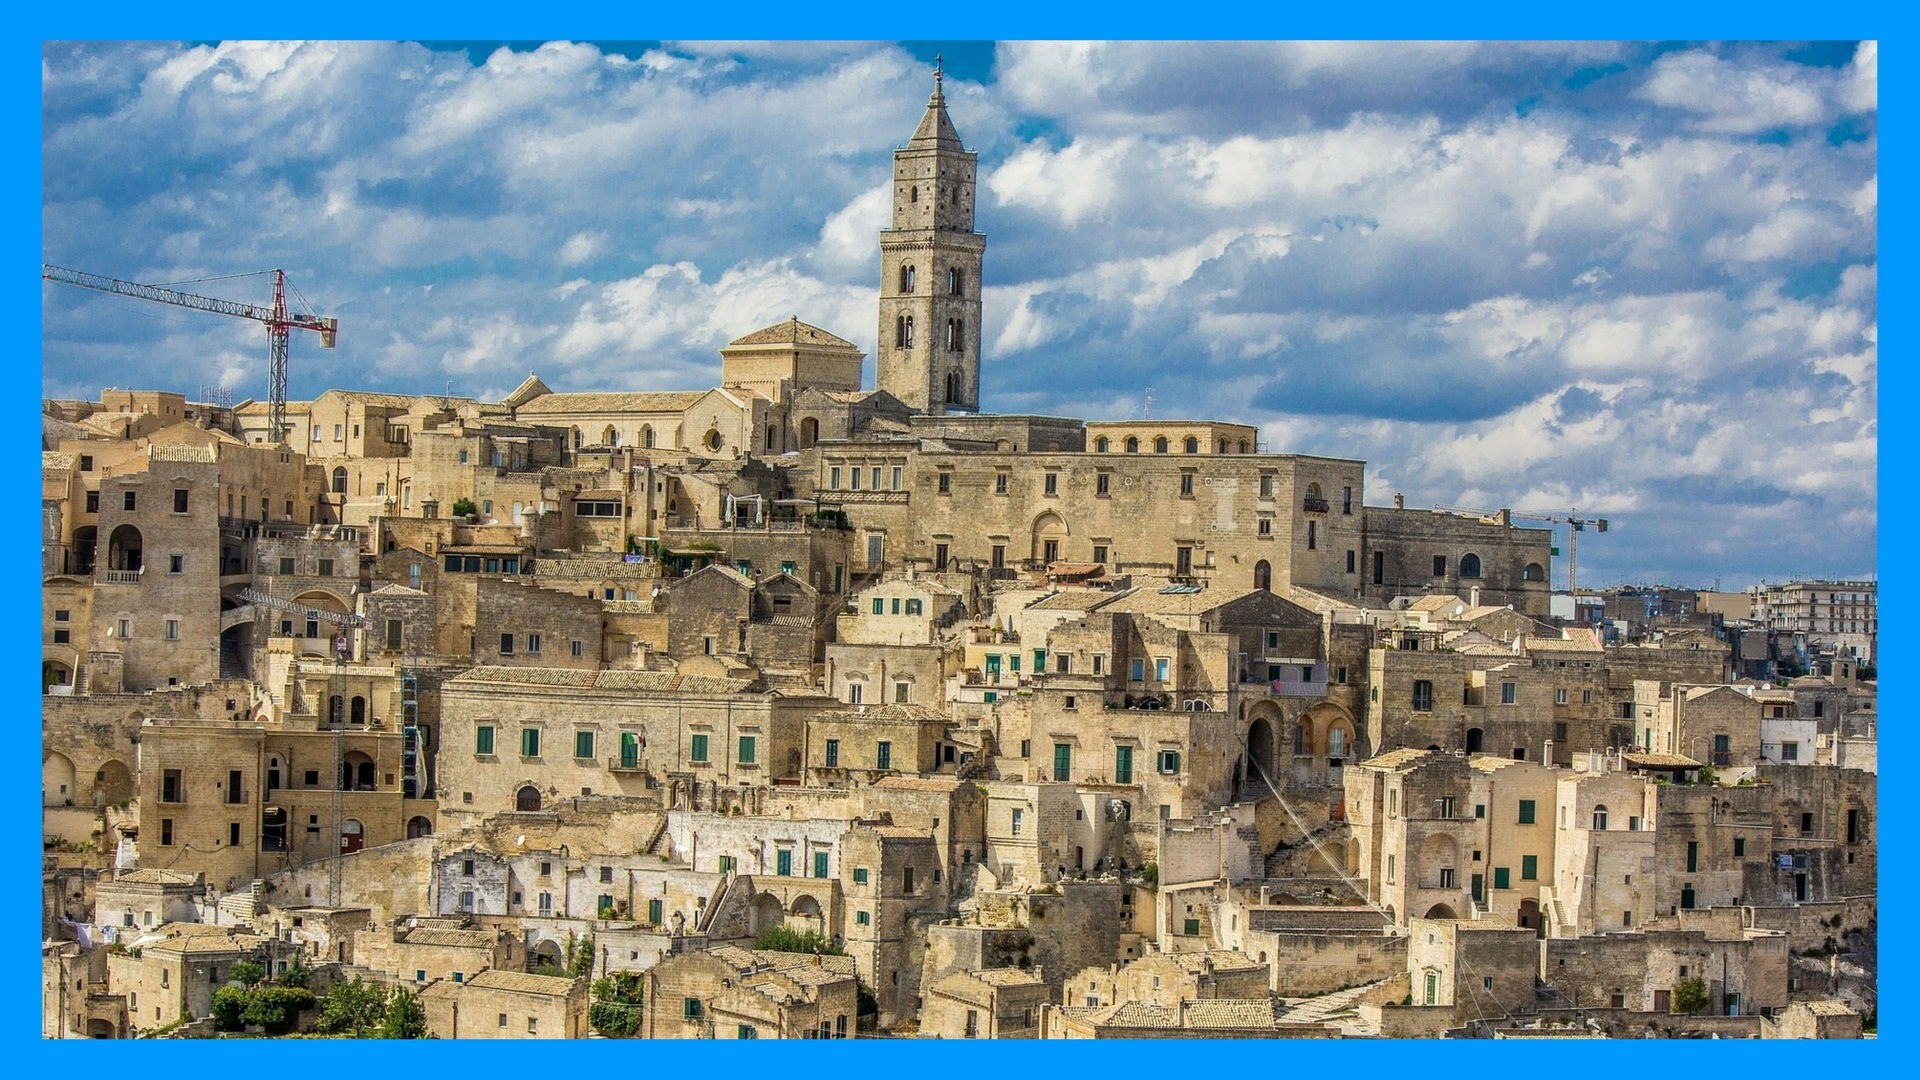 UNESCO World Heritage Site, The Sassi and the Park of the Rupestrian Churches of Matera